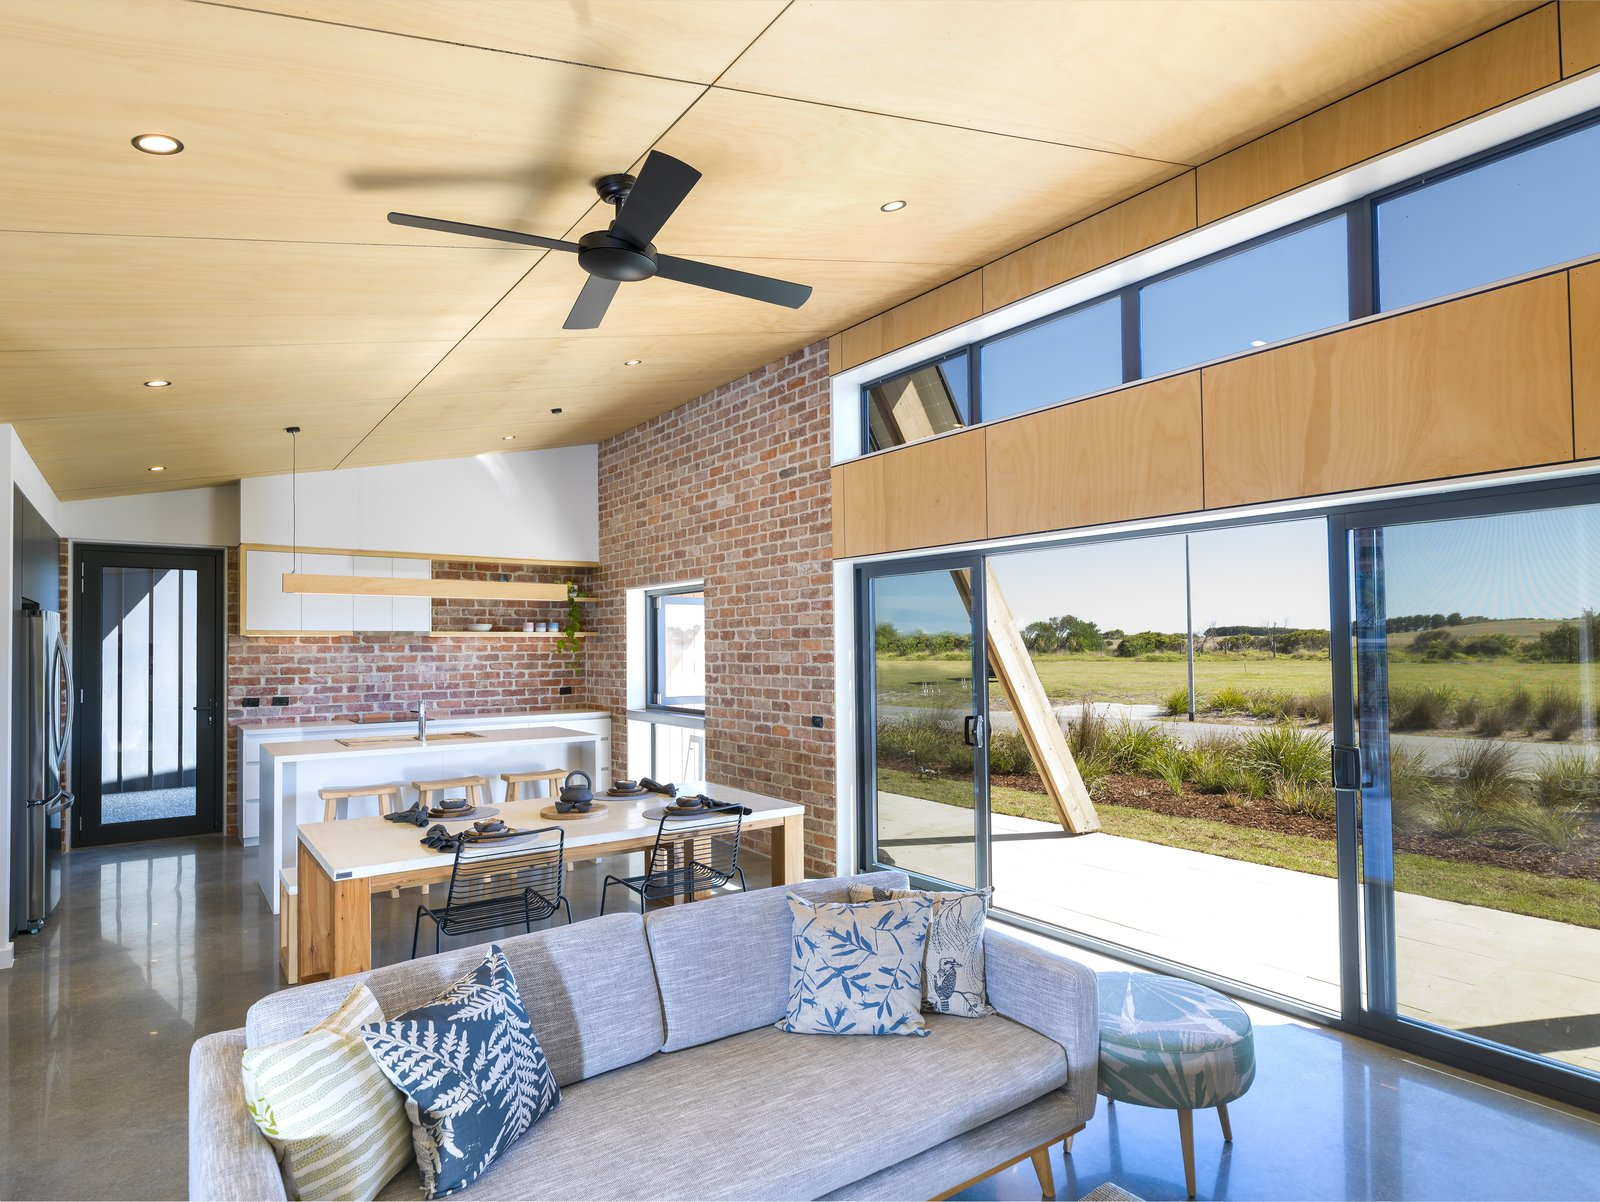 The home's rectilinear floor plan facilitates coastal cross-breezes (or passive cooling), while thermally broken double-glazed windows ensure the building envelope stays tight so as to reduce carbon emissions.